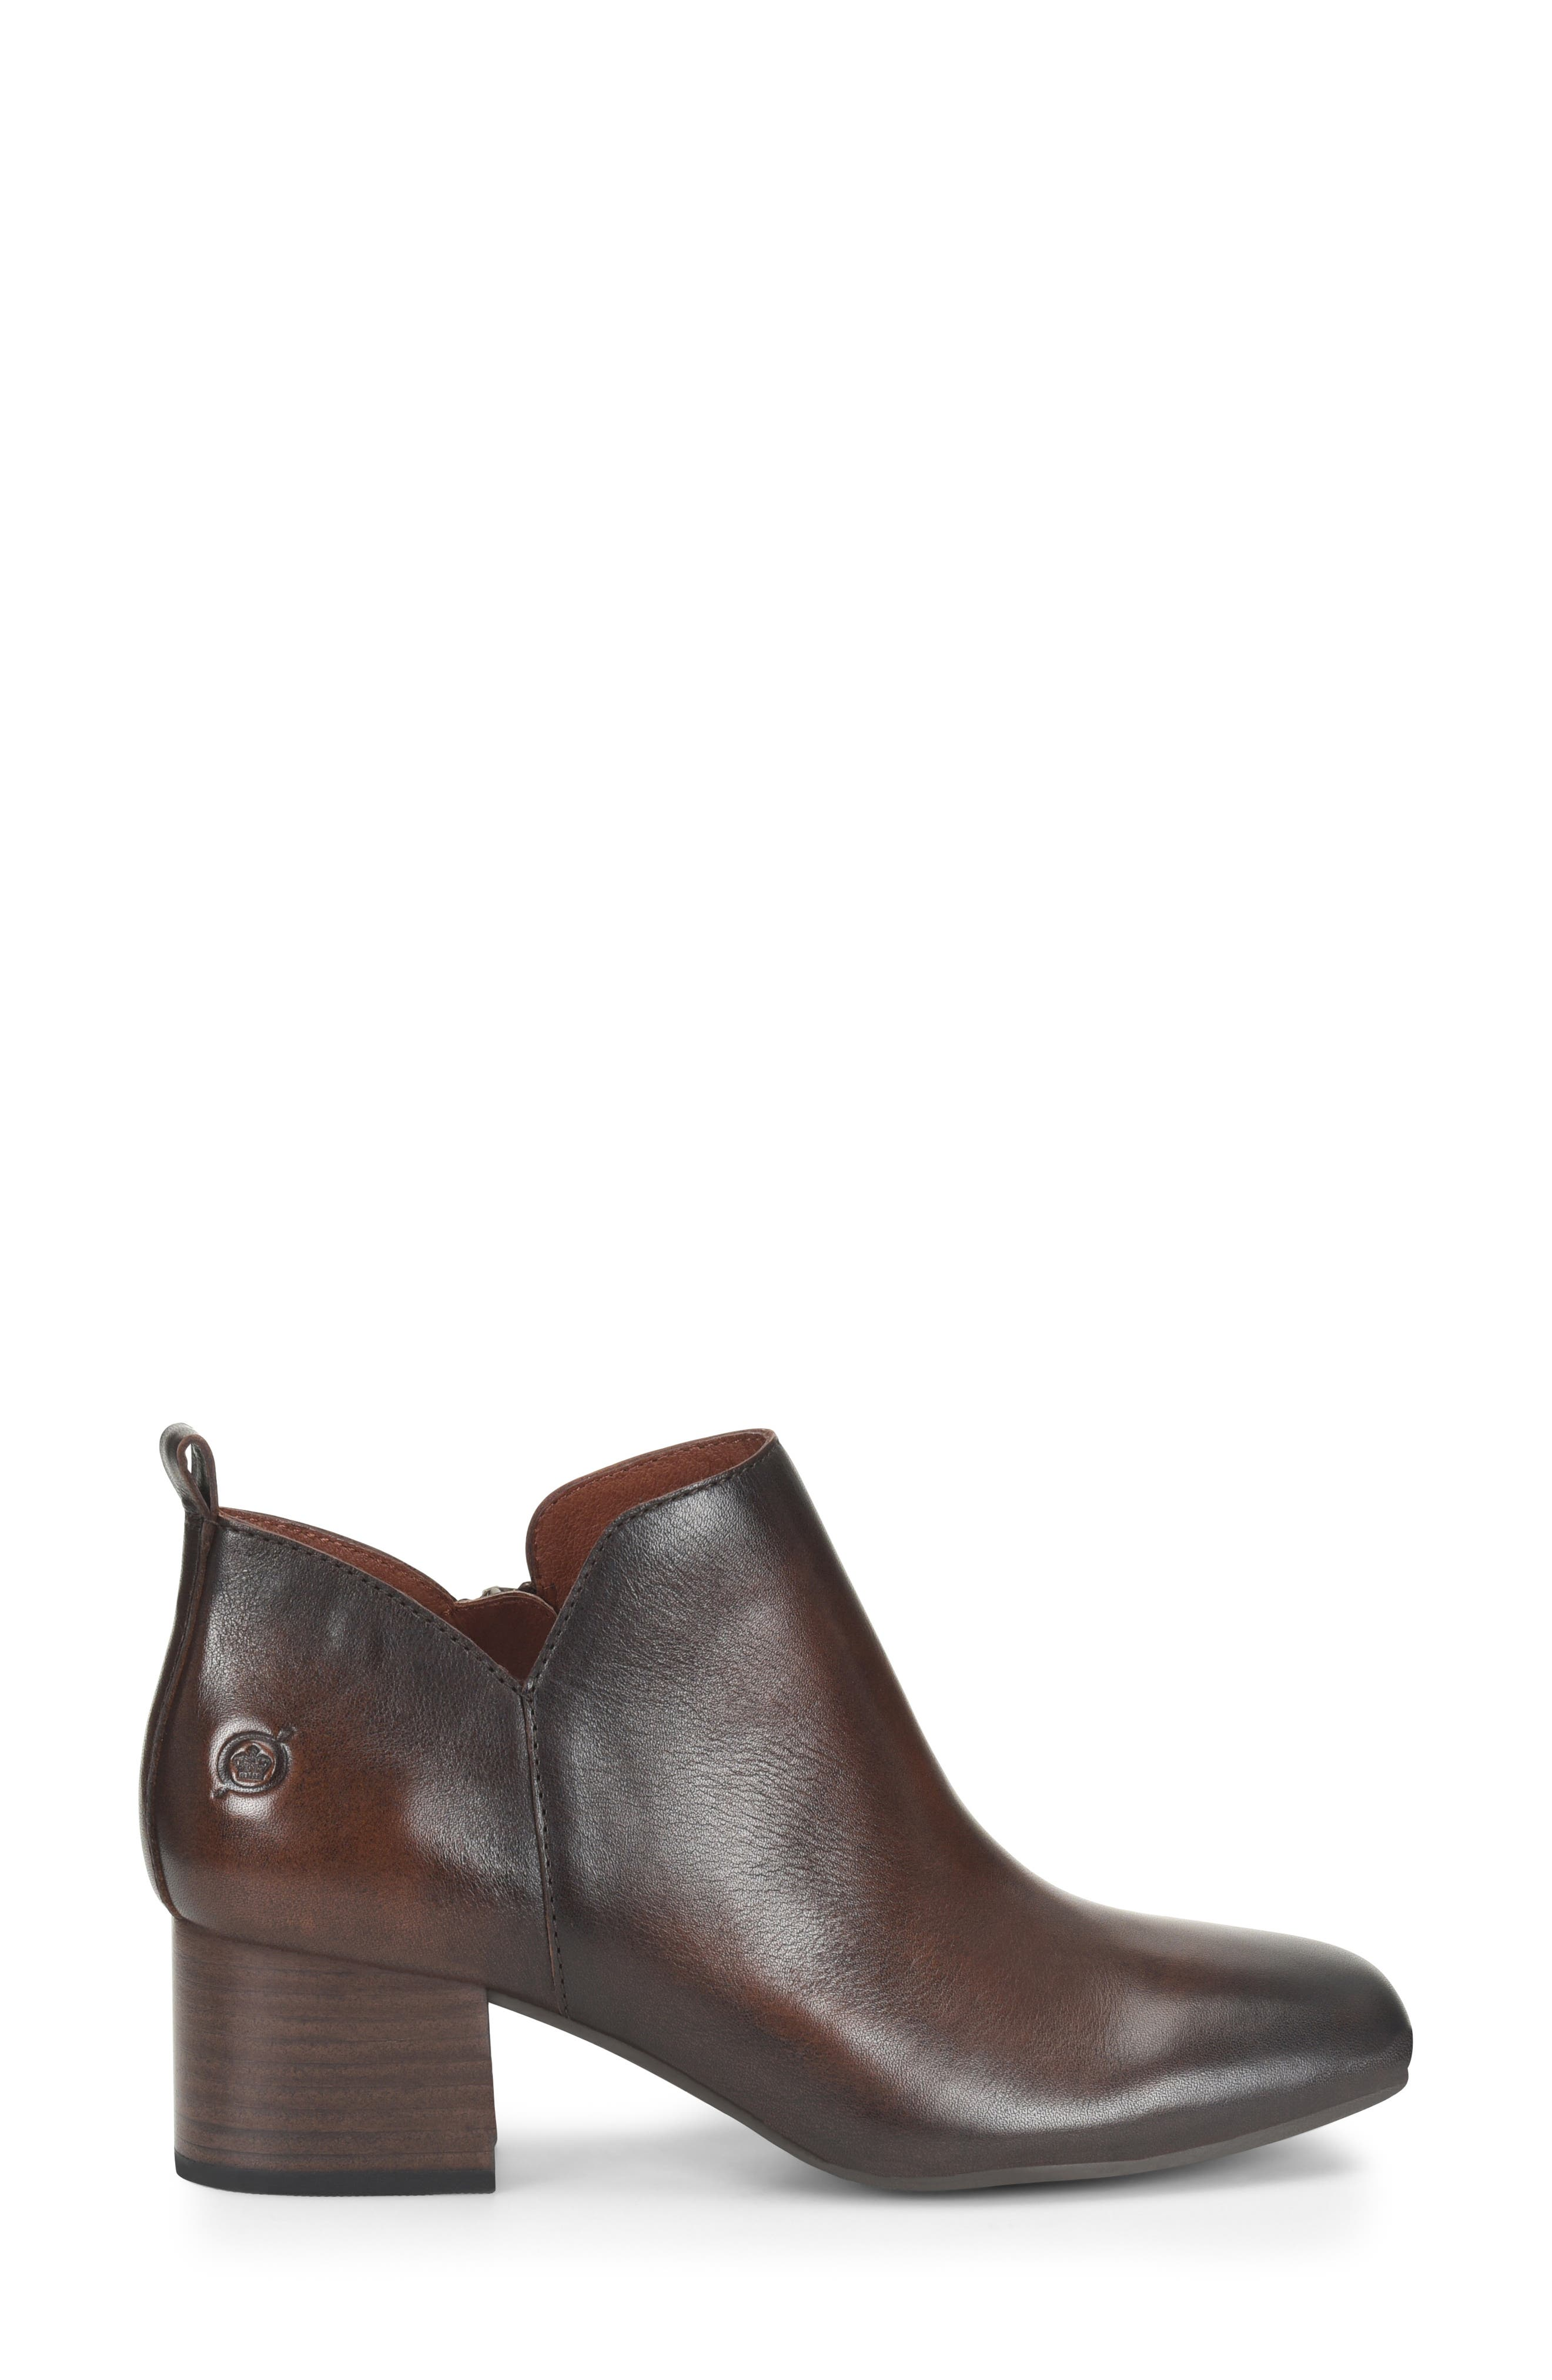 Aneto Bootie,                             Alternate thumbnail 3, color,                             BROWN/ BROWN LEATHER